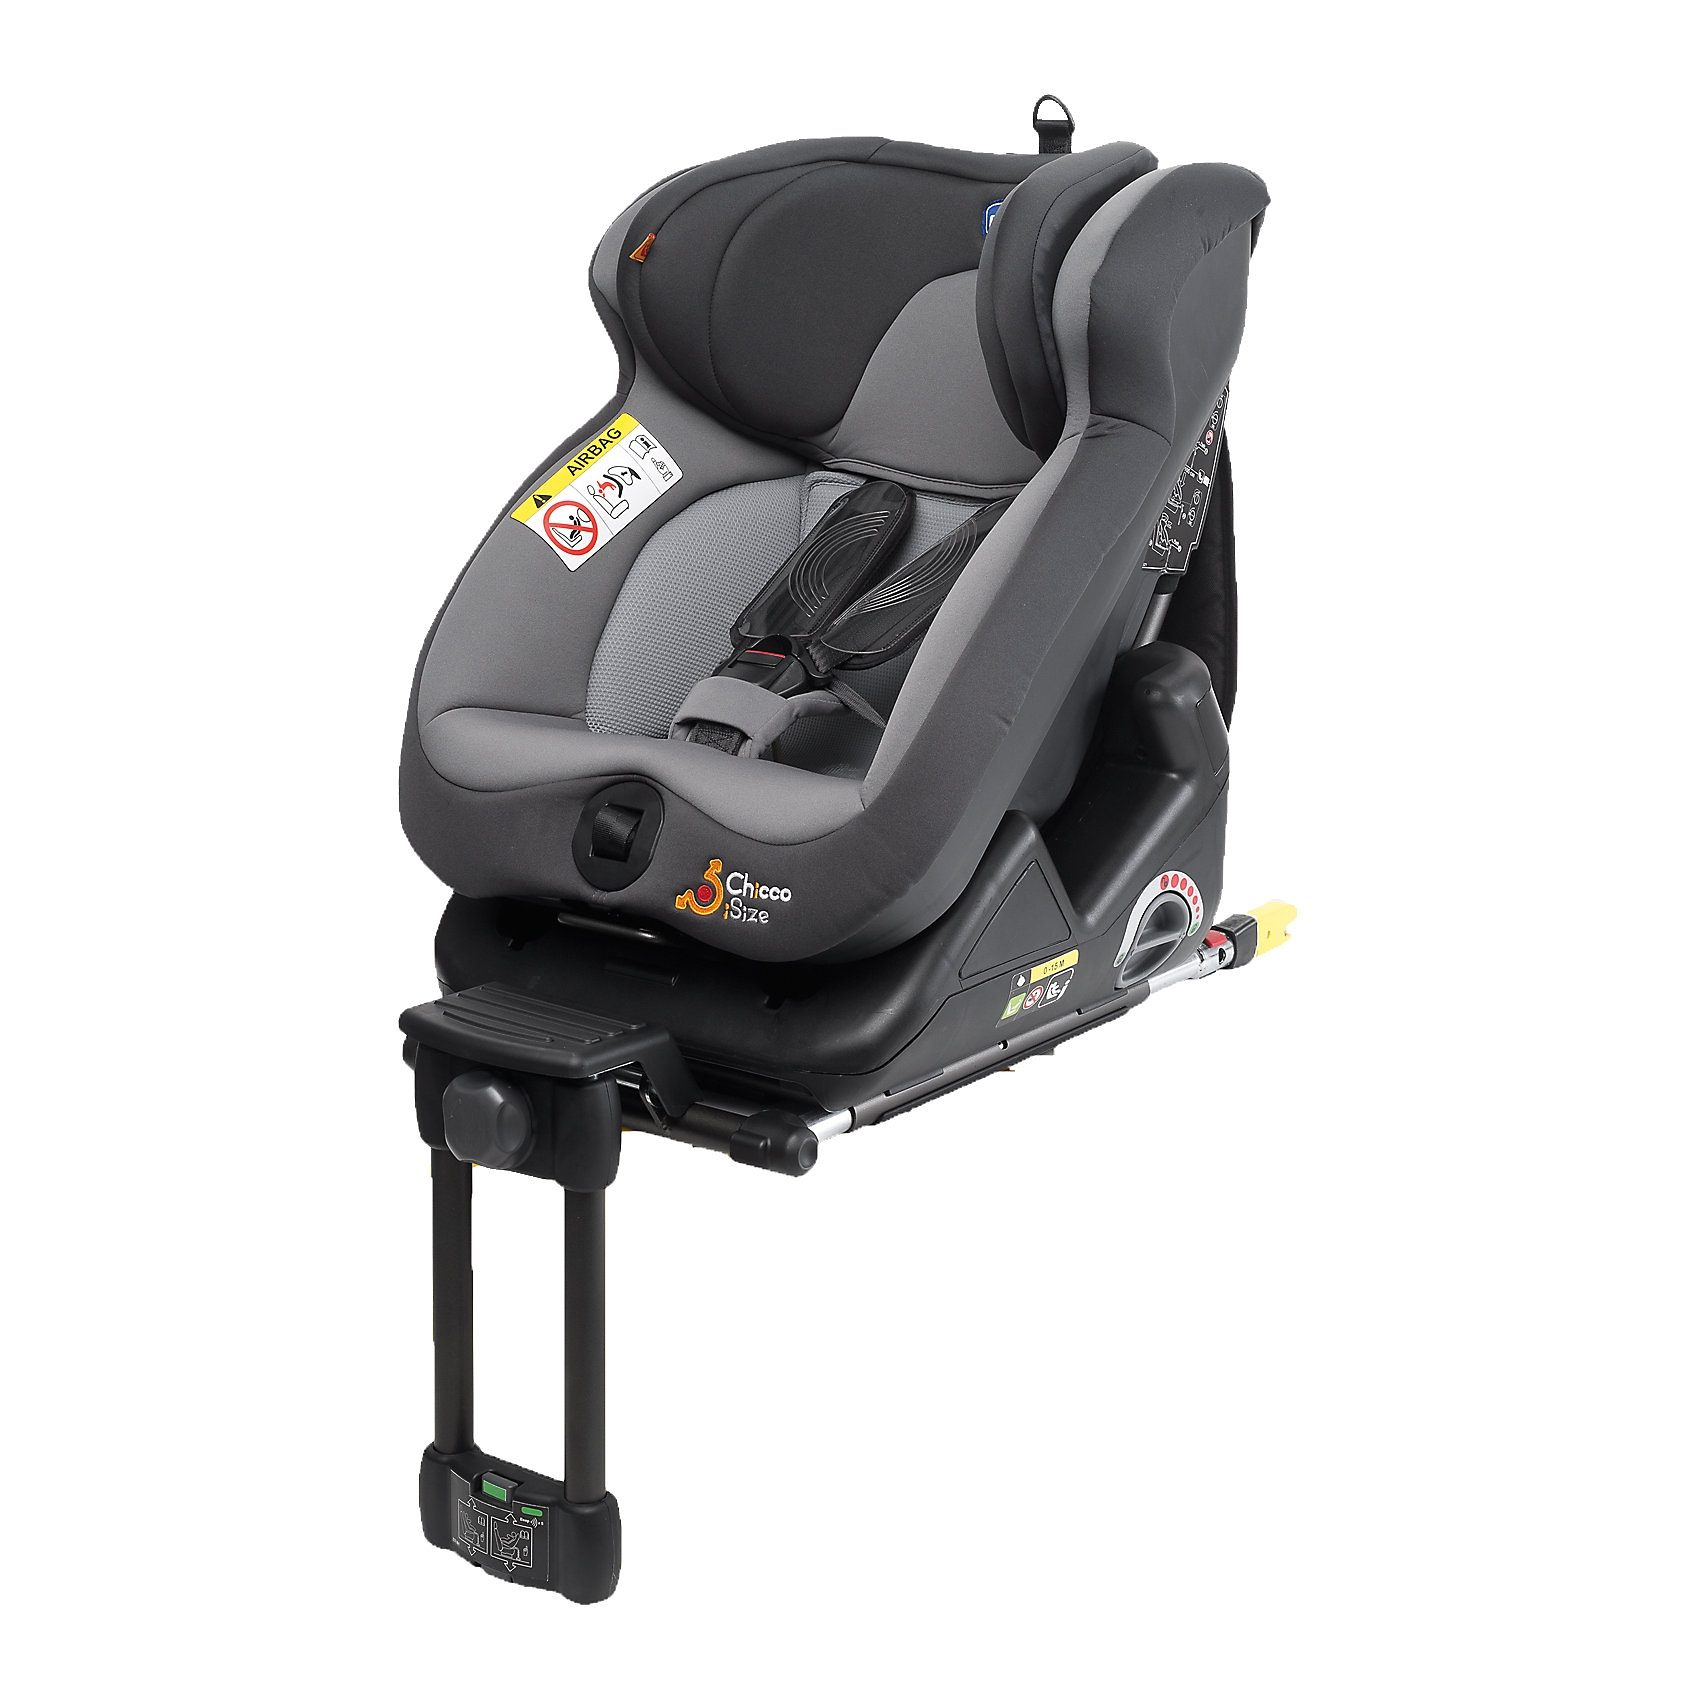 CHICCO Auto-Kindersitz I-Size, grey